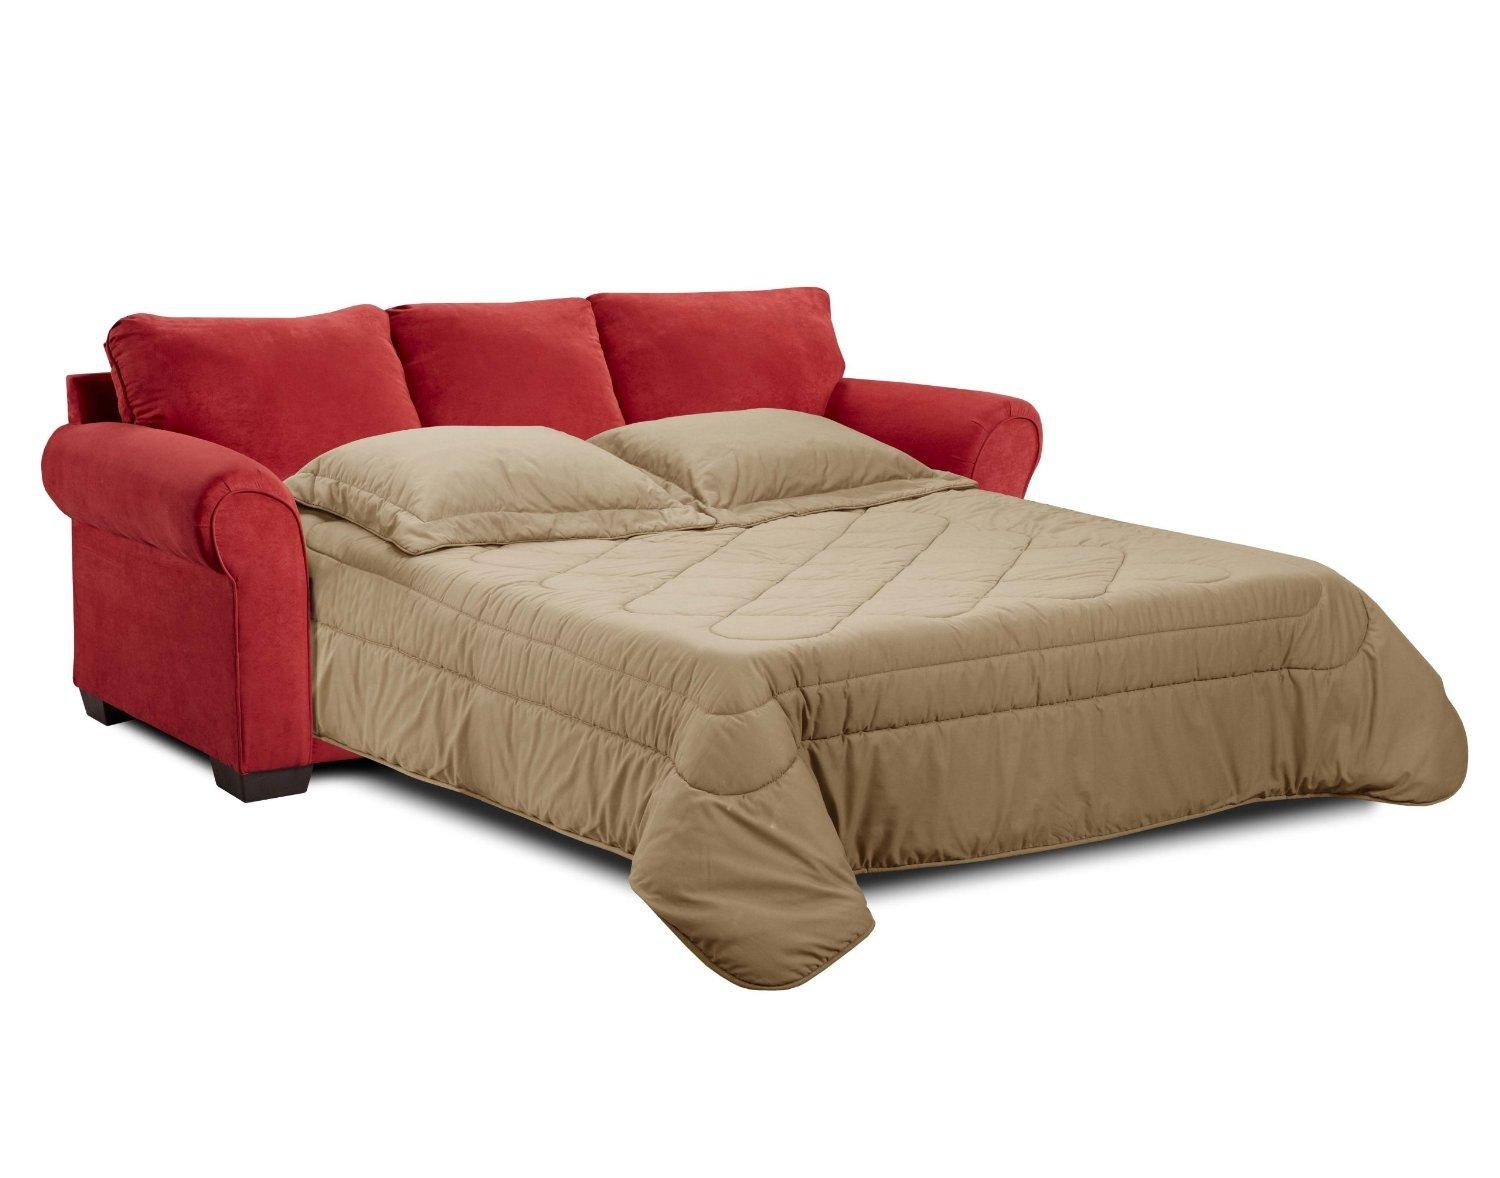 Featured Image of Sofa Sleepers Queen Size